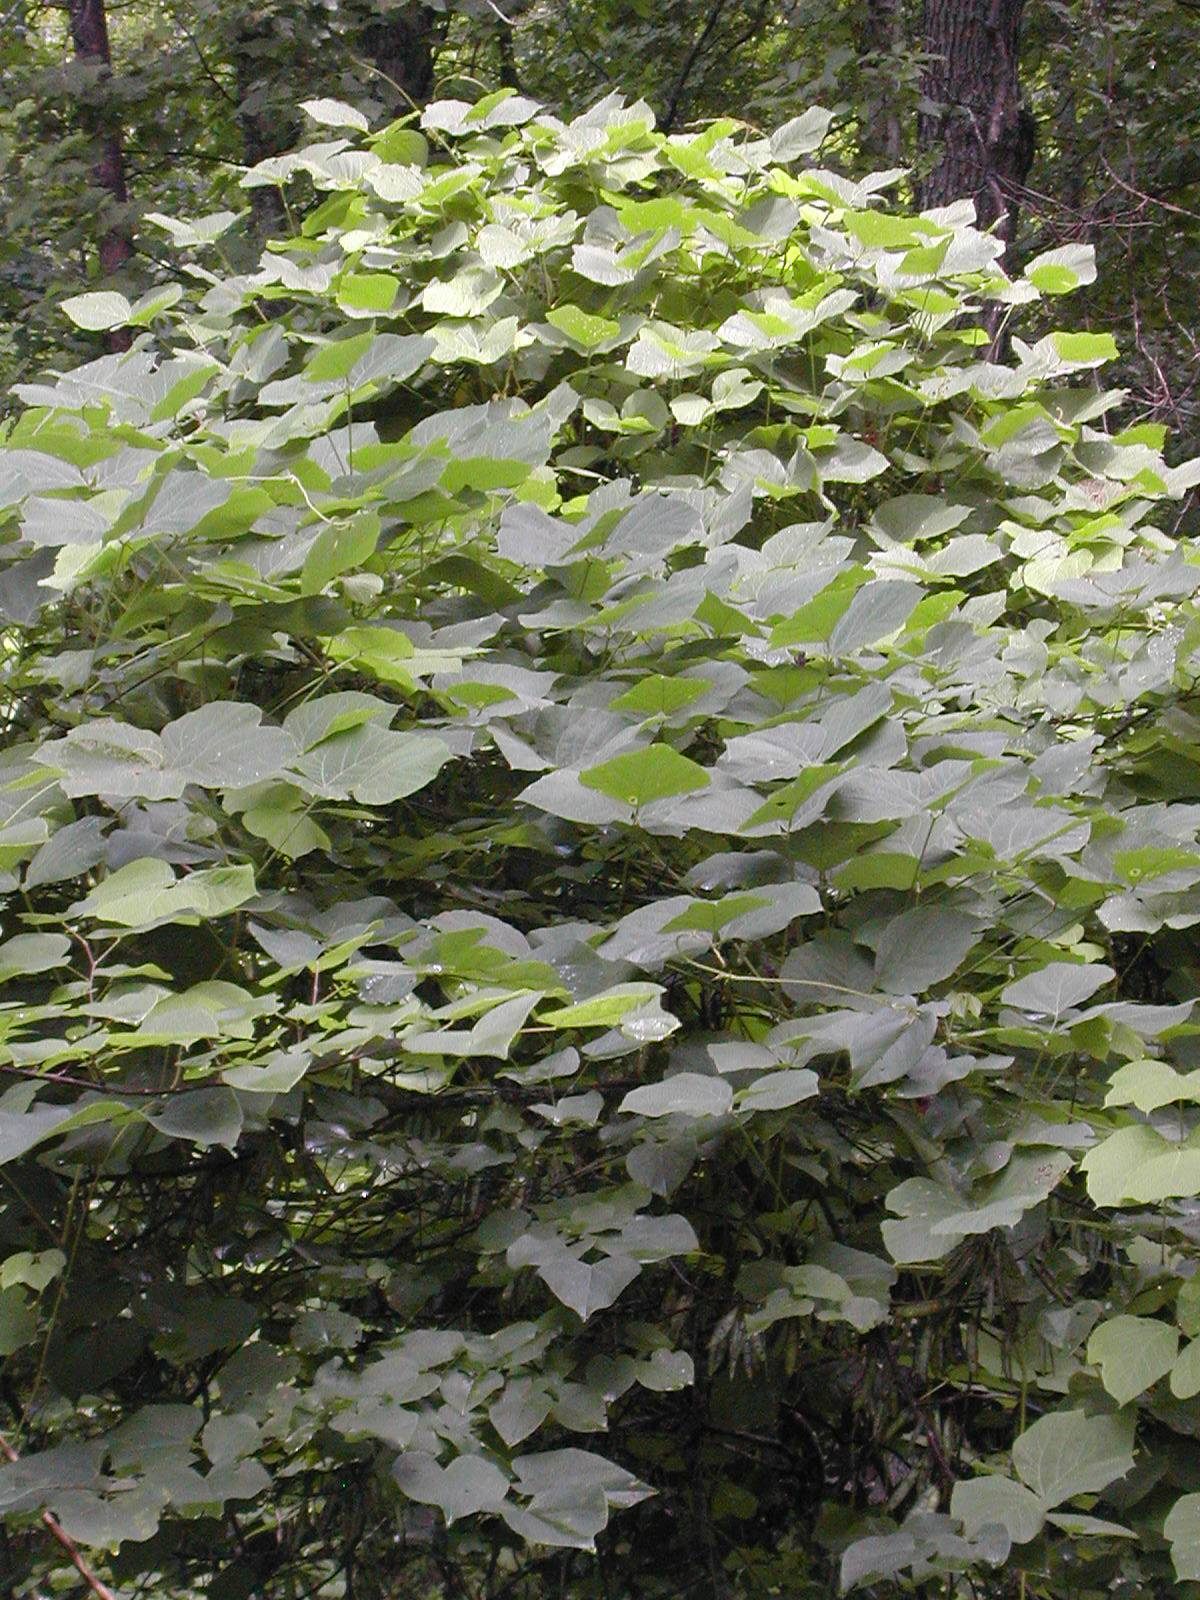 As the climate warms, the vine that ate the U.S. South is starting to gnaw at parts of the North, too. Kudzu, a three-leafed weed first planted in the U.S. more than 100 years ago for the beauty of its purple blossoms, has been spotted in every county in Georgia, Alabama and North Carolina. It chokes young trees, brings down power lines and infests abandoned homes. Now the plant, which can grow as fast as a foot per day, is creeping northward,